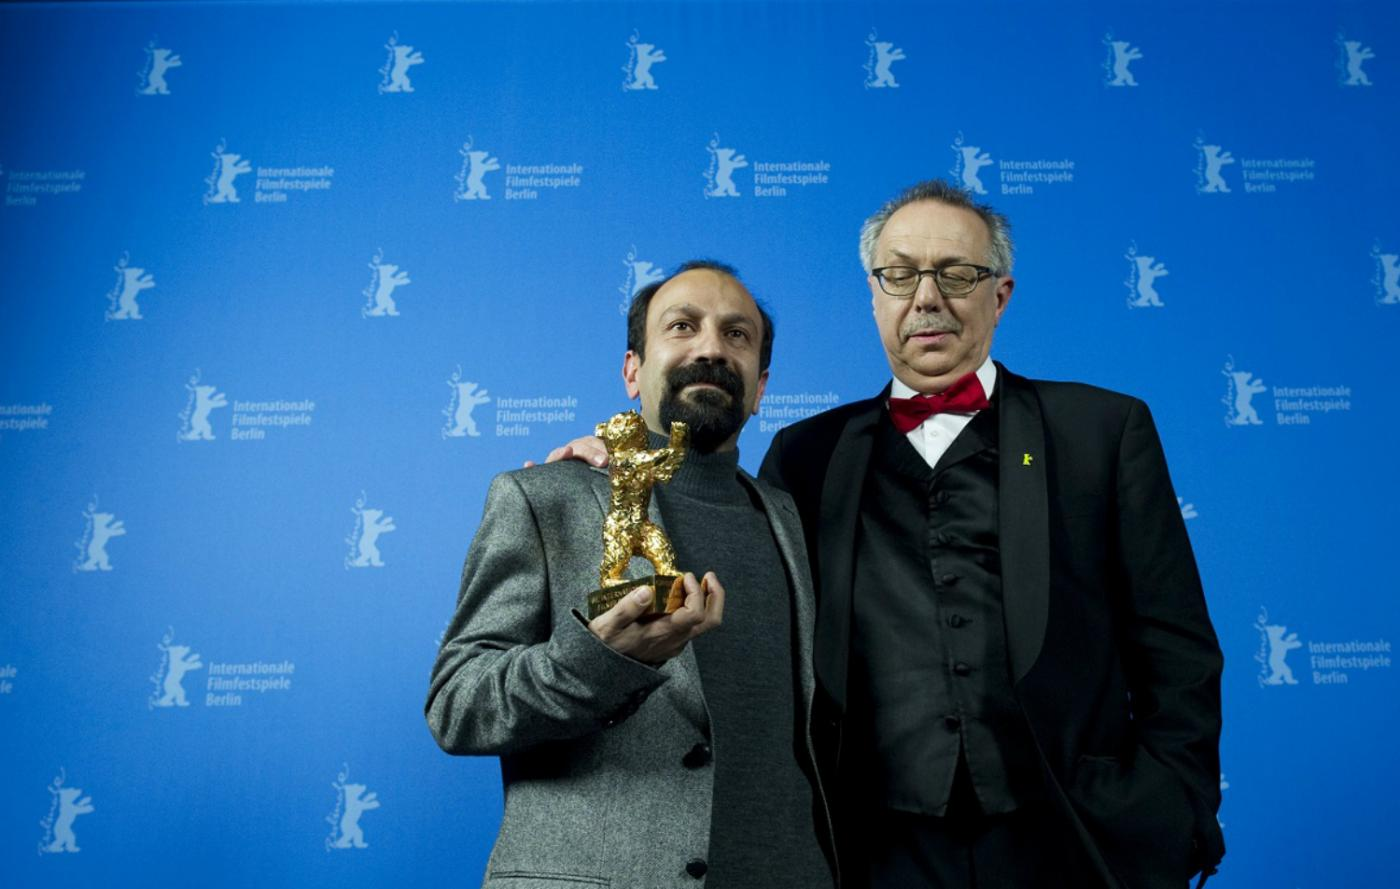 Asghar Farhadi, left, in 2011 with the Golden Bear he won in 2011 for A Separation: to his right is festival chief Dieter Kosslick (AFP)